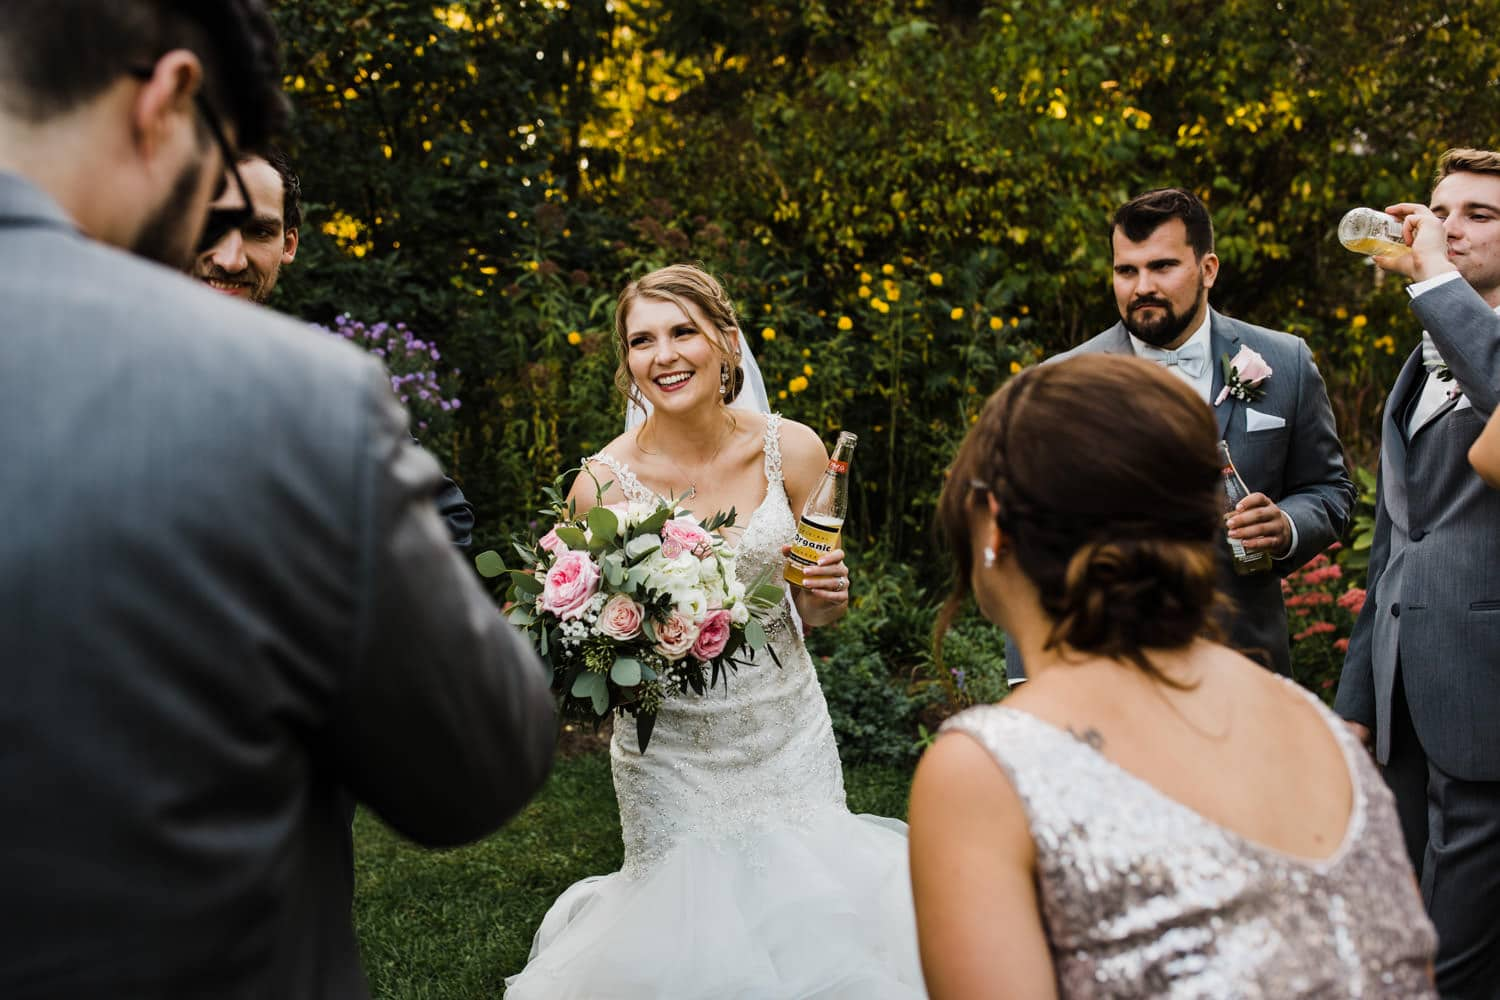 bride laughs with wedding party while having a drink in the garden - strathmere summer wedding